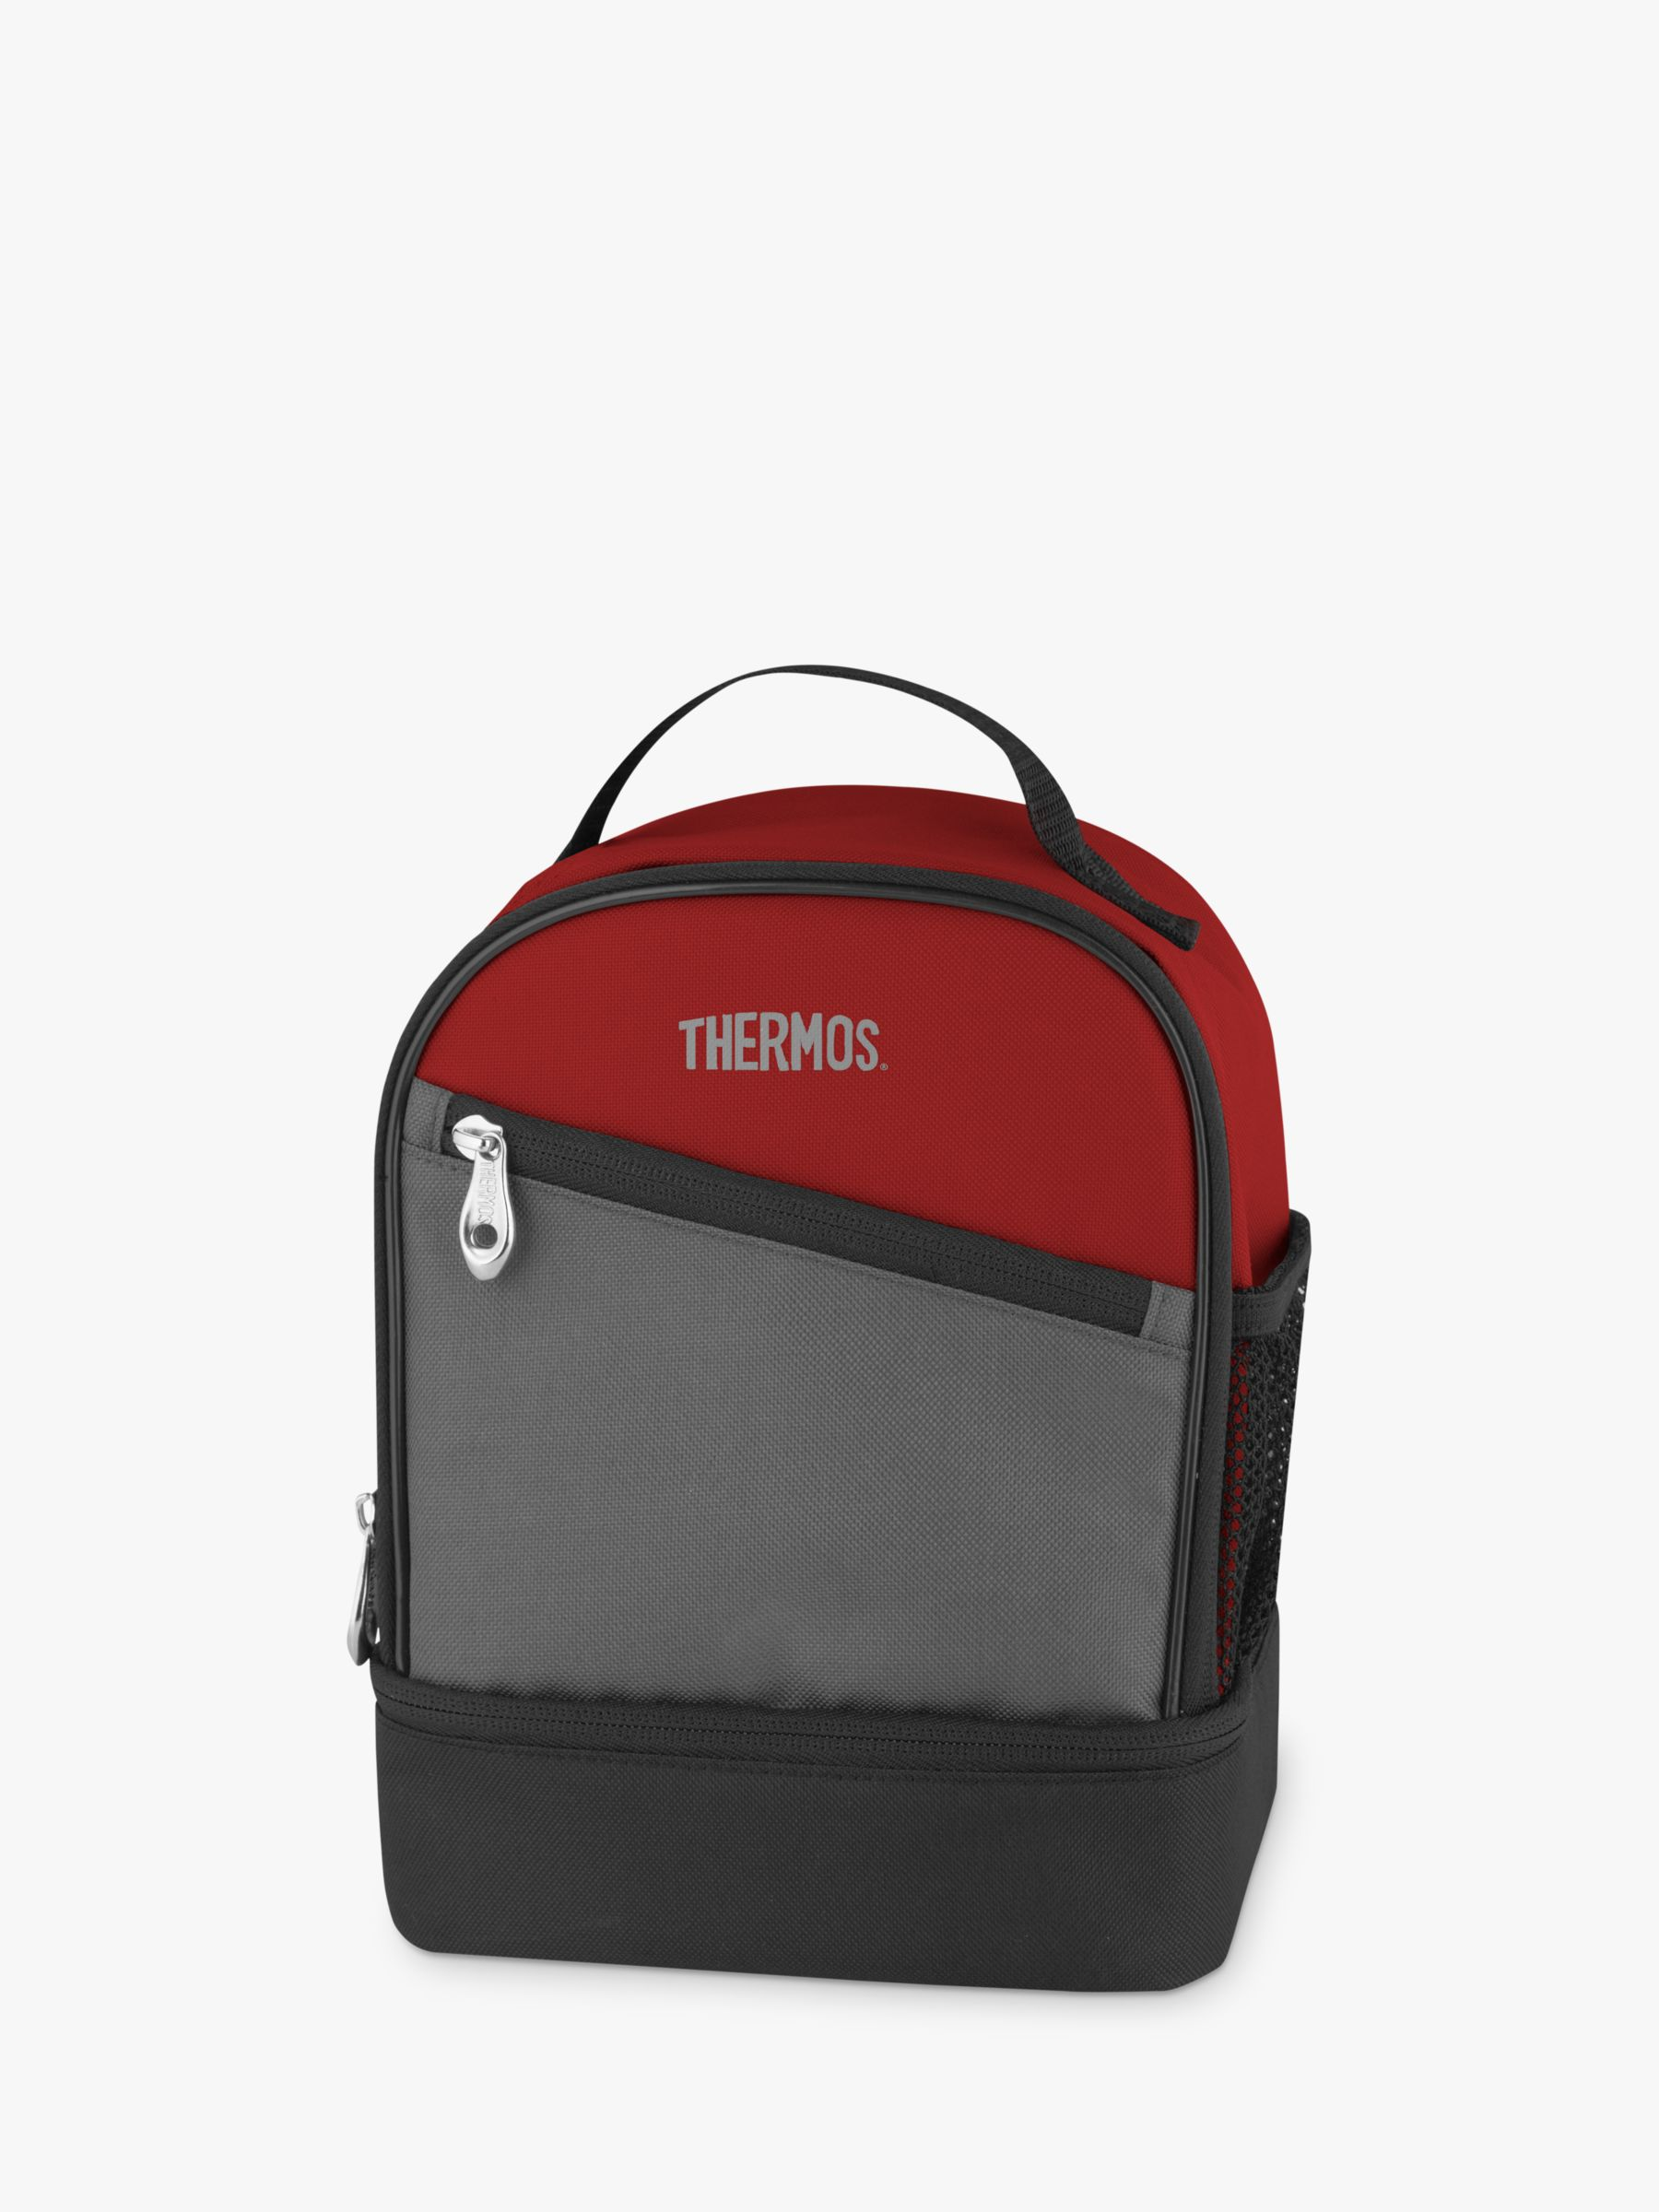 Thermos Thermos Essentials Dual Compartment Lunch Bag